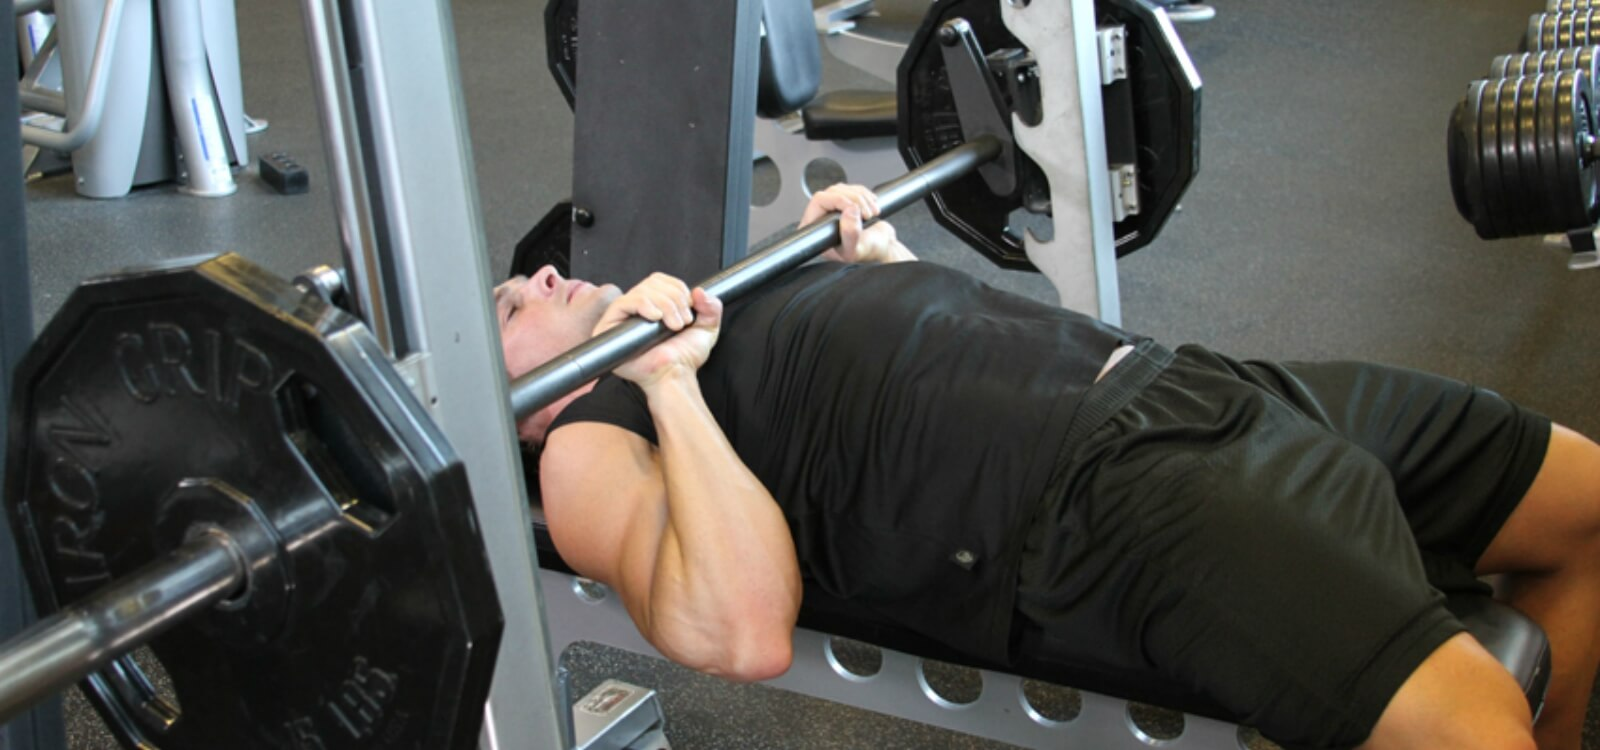 Research Review: Should You Bench Press with a Smith Machine or a Barbell?